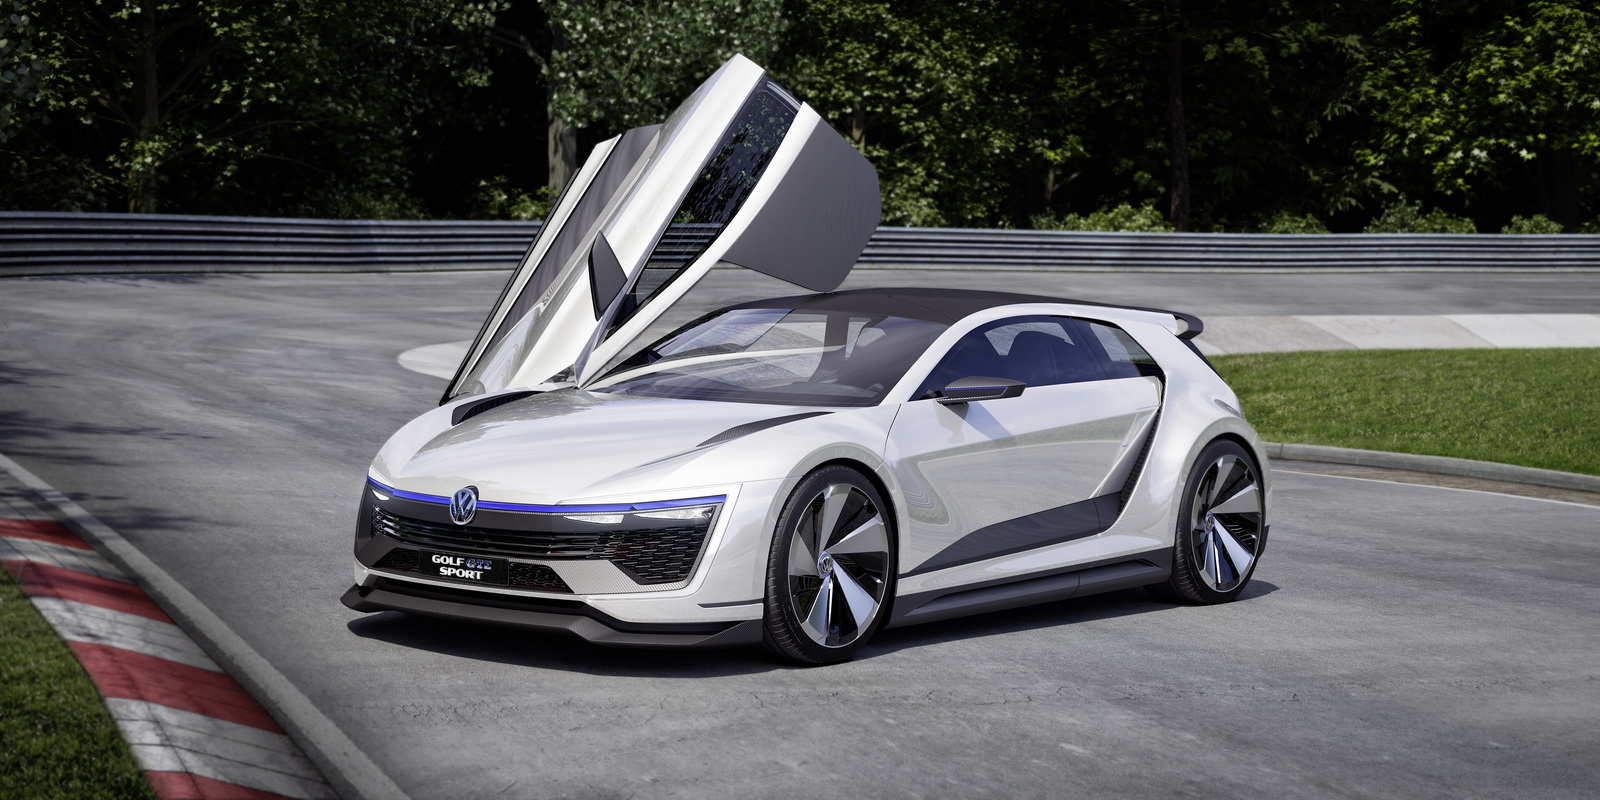 Sadly The Golf Gte Sport Concept Will Likely Remain Just That A But Don T Be Surprised Gti In Future To Ed By Hybrid Motor